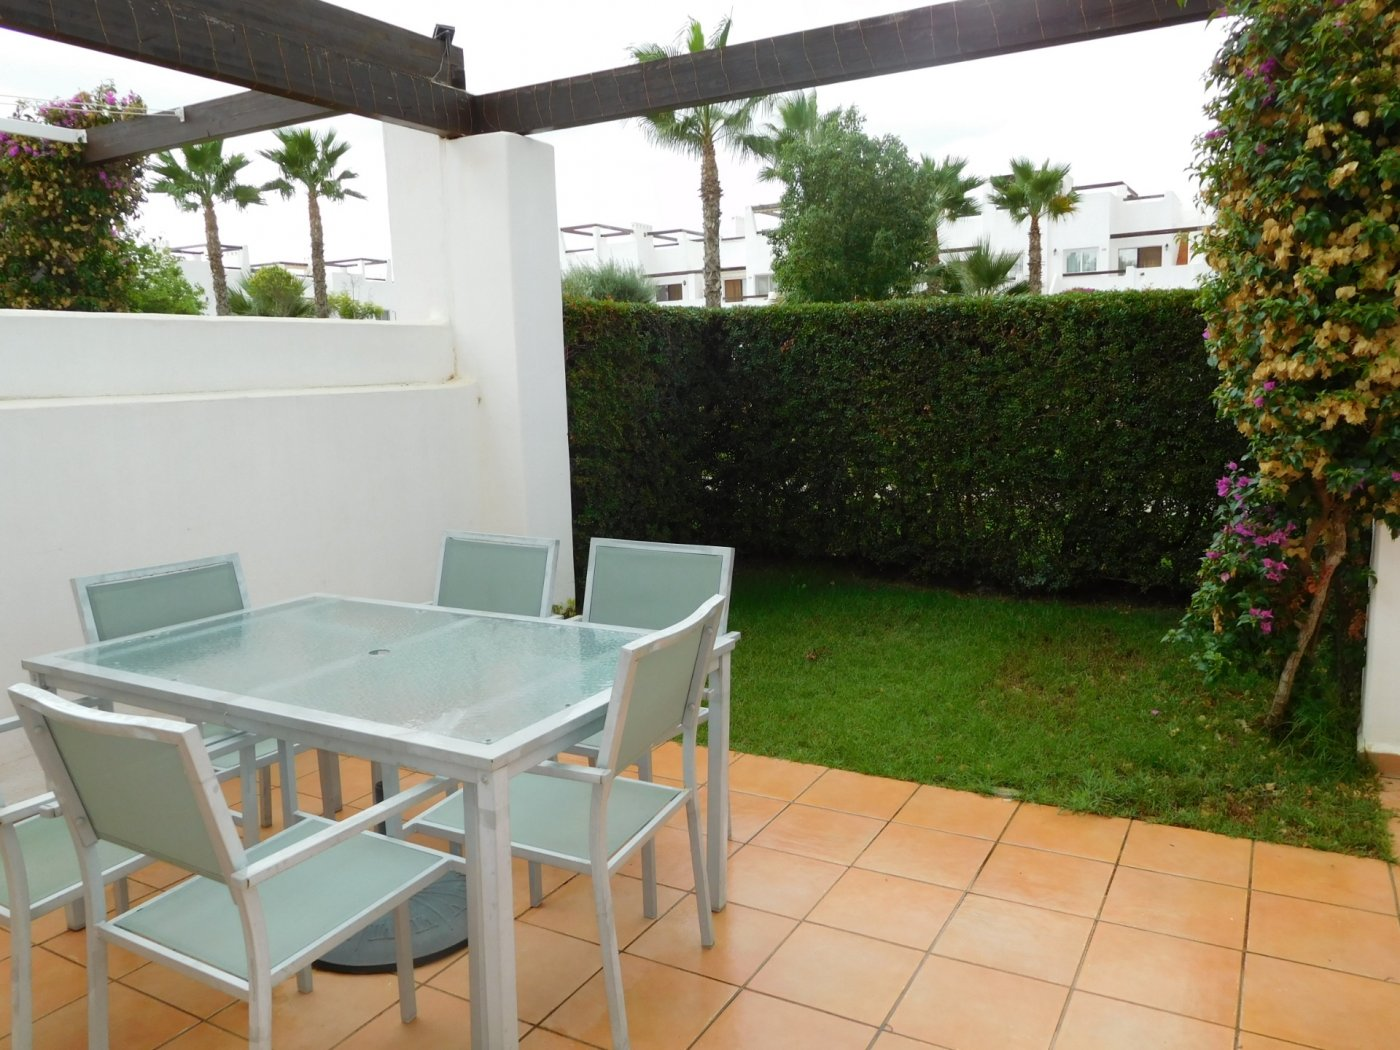 Gallery Image 19 of Flat For rent in Condado De Alhama, Alhama De Murcia With Pool